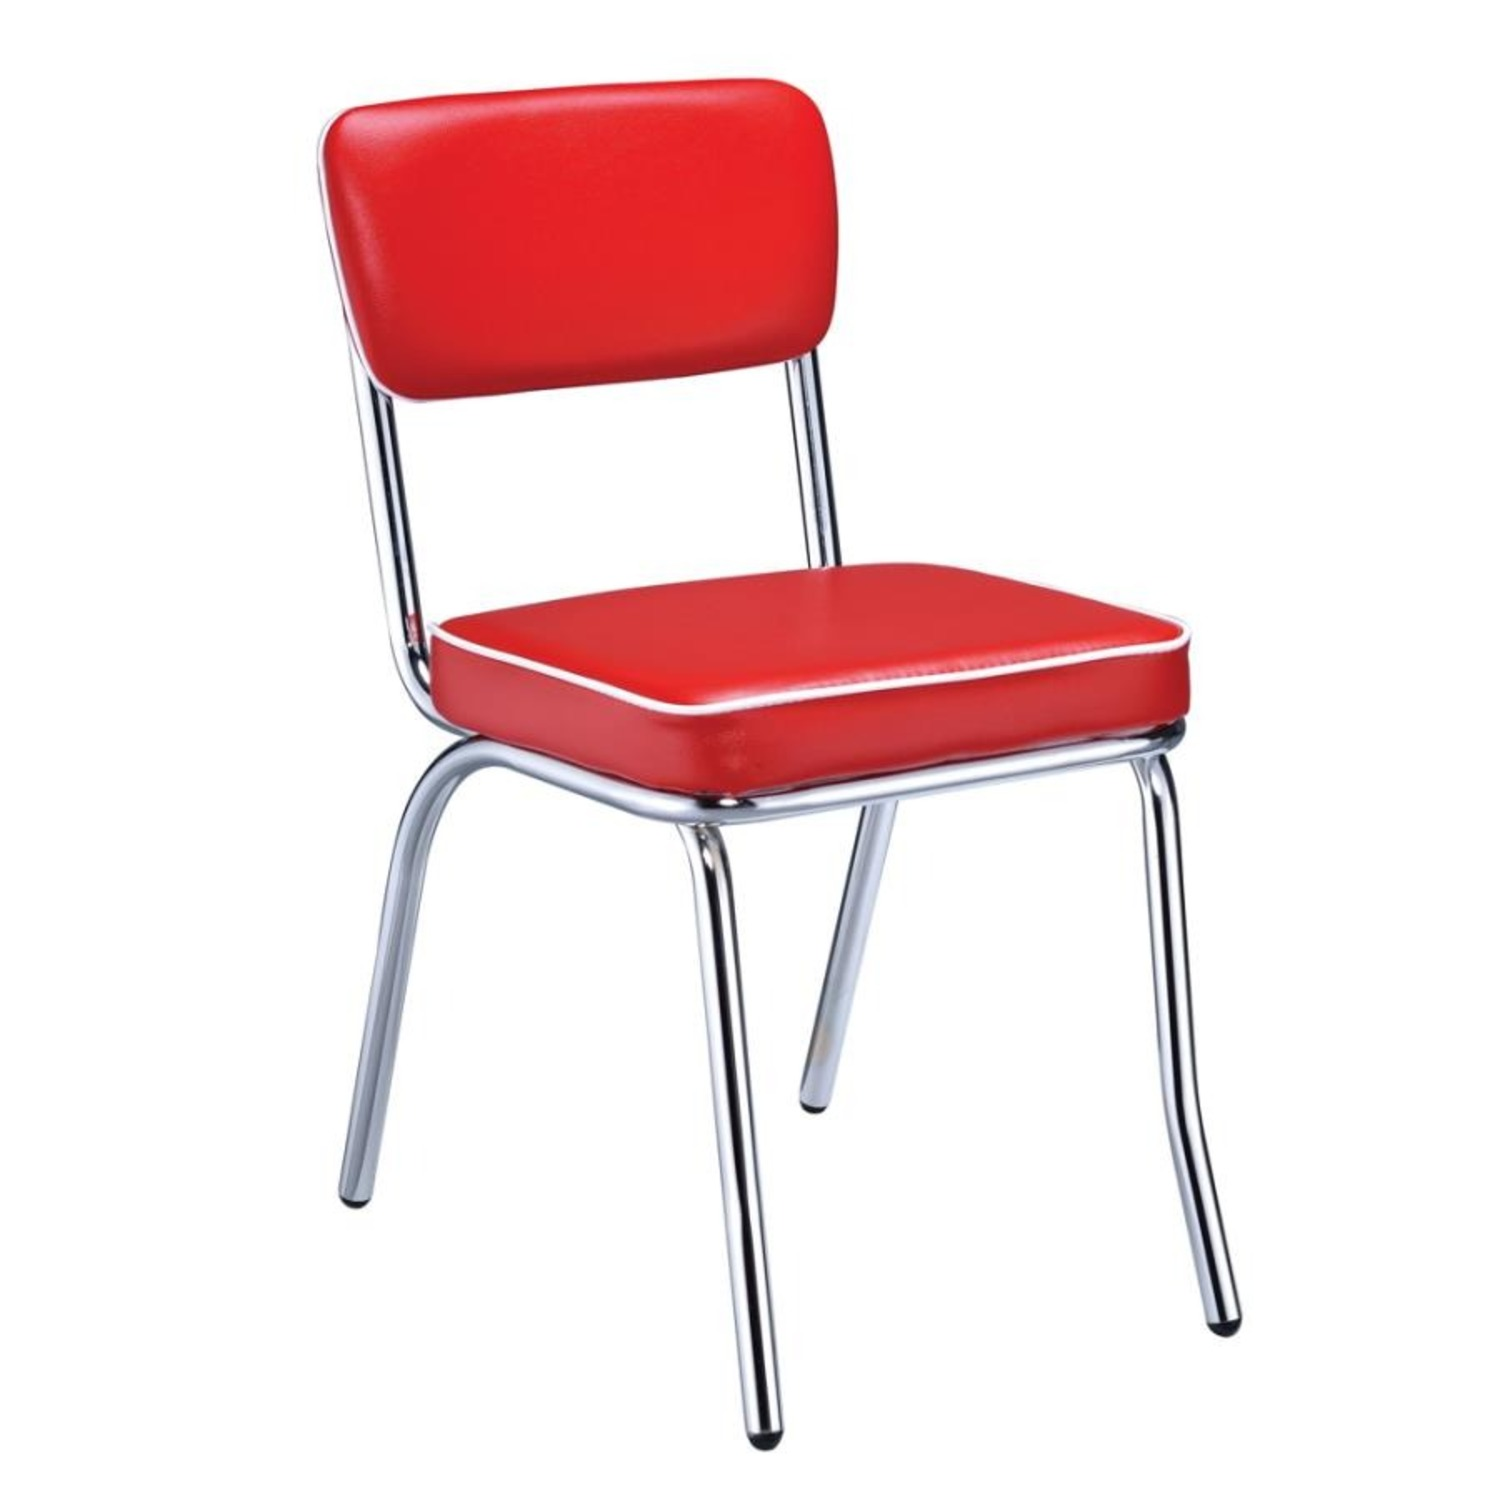 Mid-Century Style Dining Chair In Red Leatherette - image-0